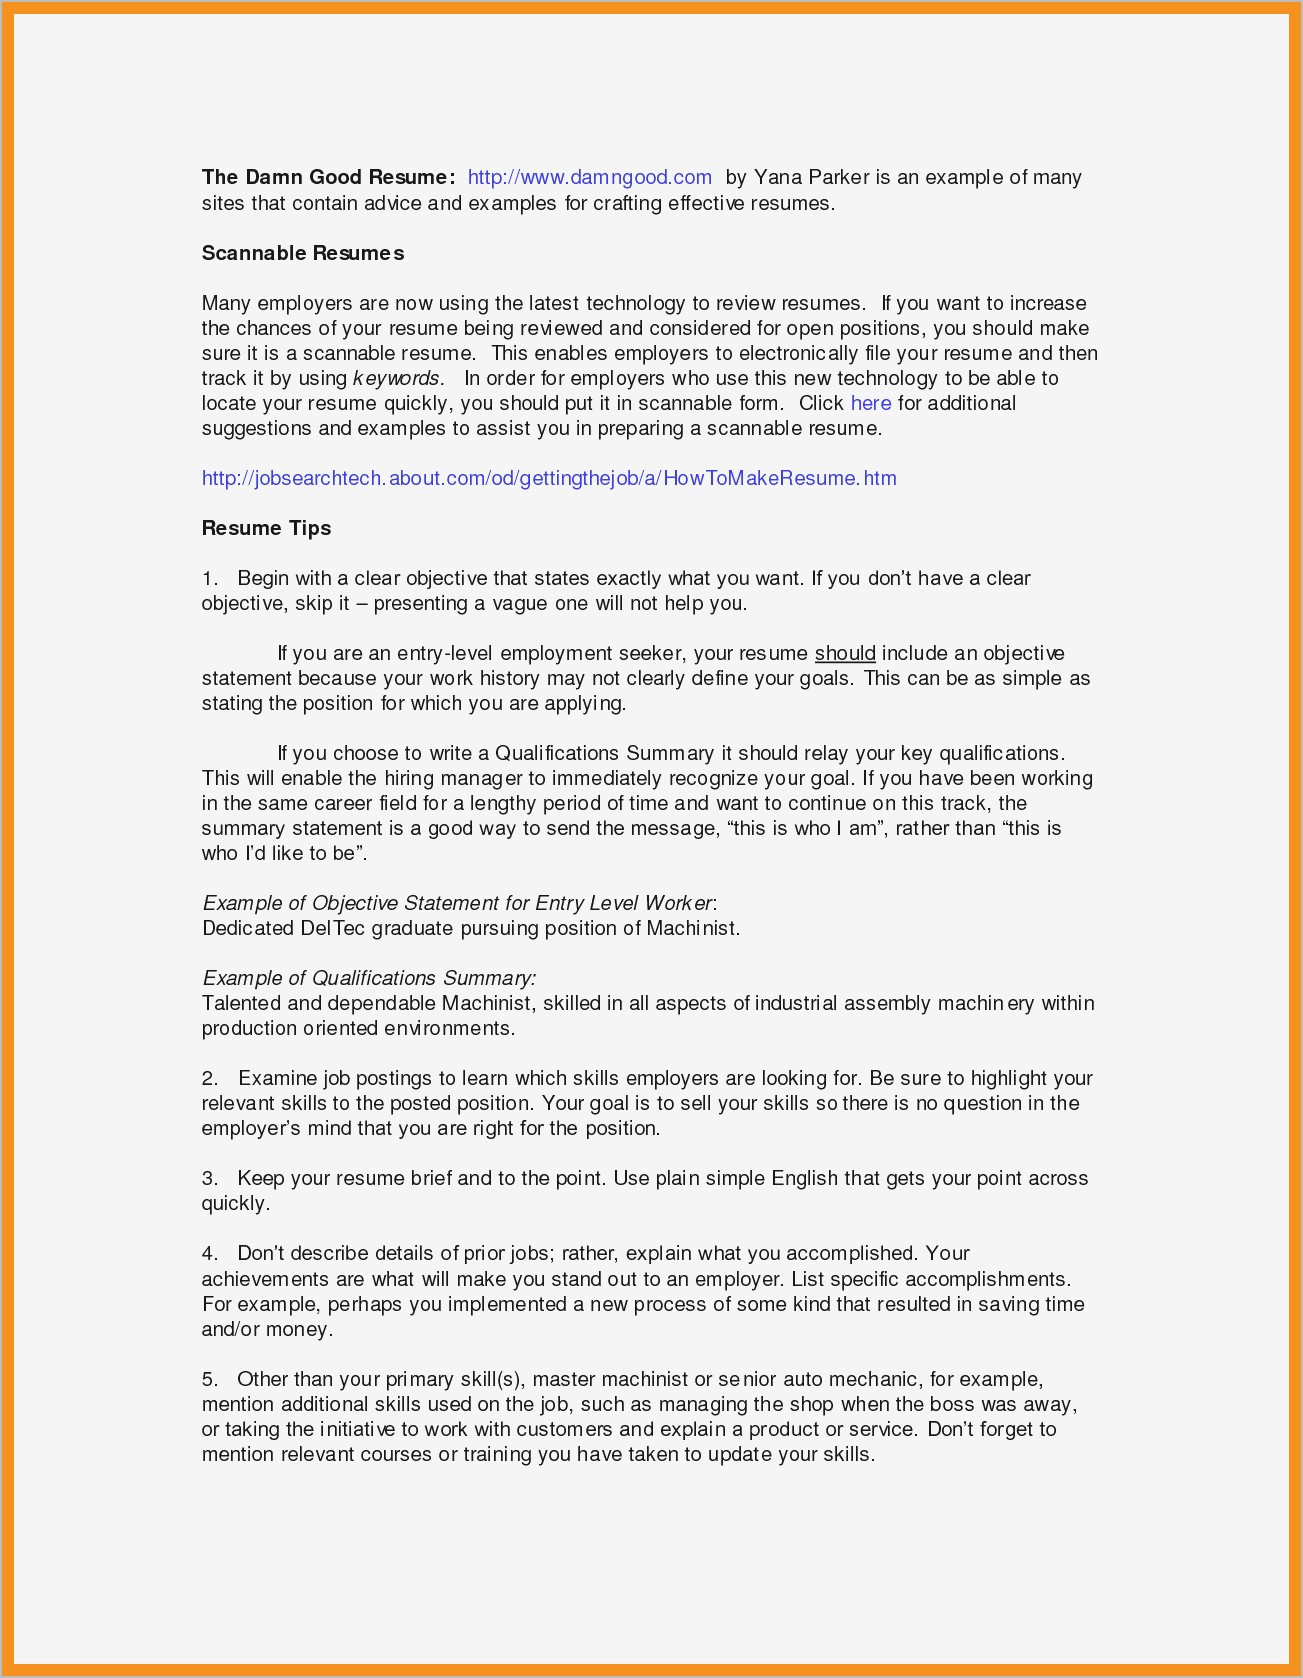 Resume Career Summary - Career Summary Resume Awesome Resume Career Overview Selo L Ink